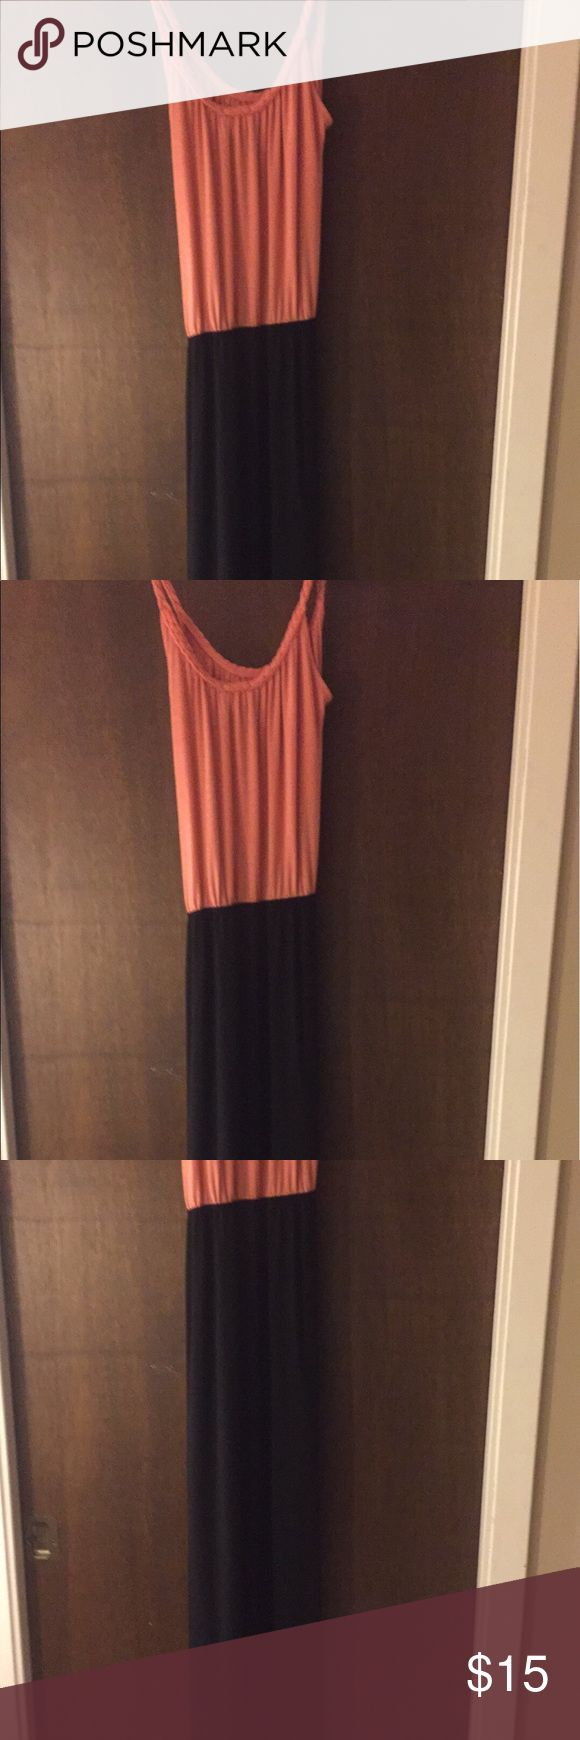 Charming Charlie Coral Maxi Dress Never worn super comfy maxi dress. This stretchy coral Charming Charlie dress is a great summer dress to be worn anywhere. Charming Charlie Dresses Maxi